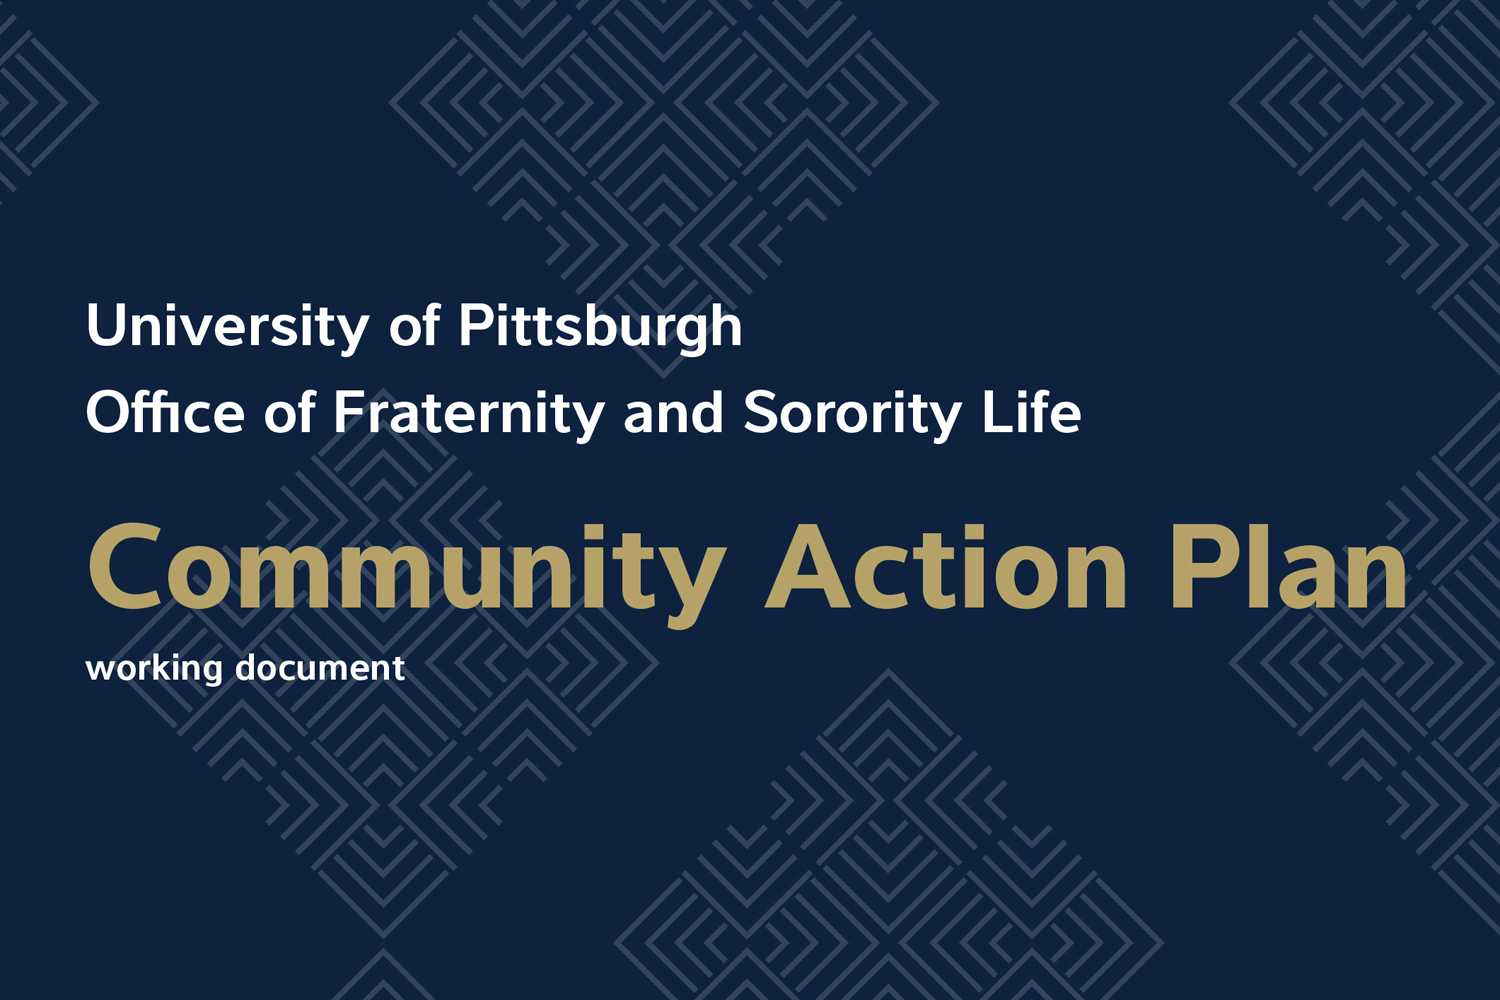 Pitt recently released a working action plan for Greek life following incidents during the Spring 2018 semester. (Image via University of Pittsburgh)